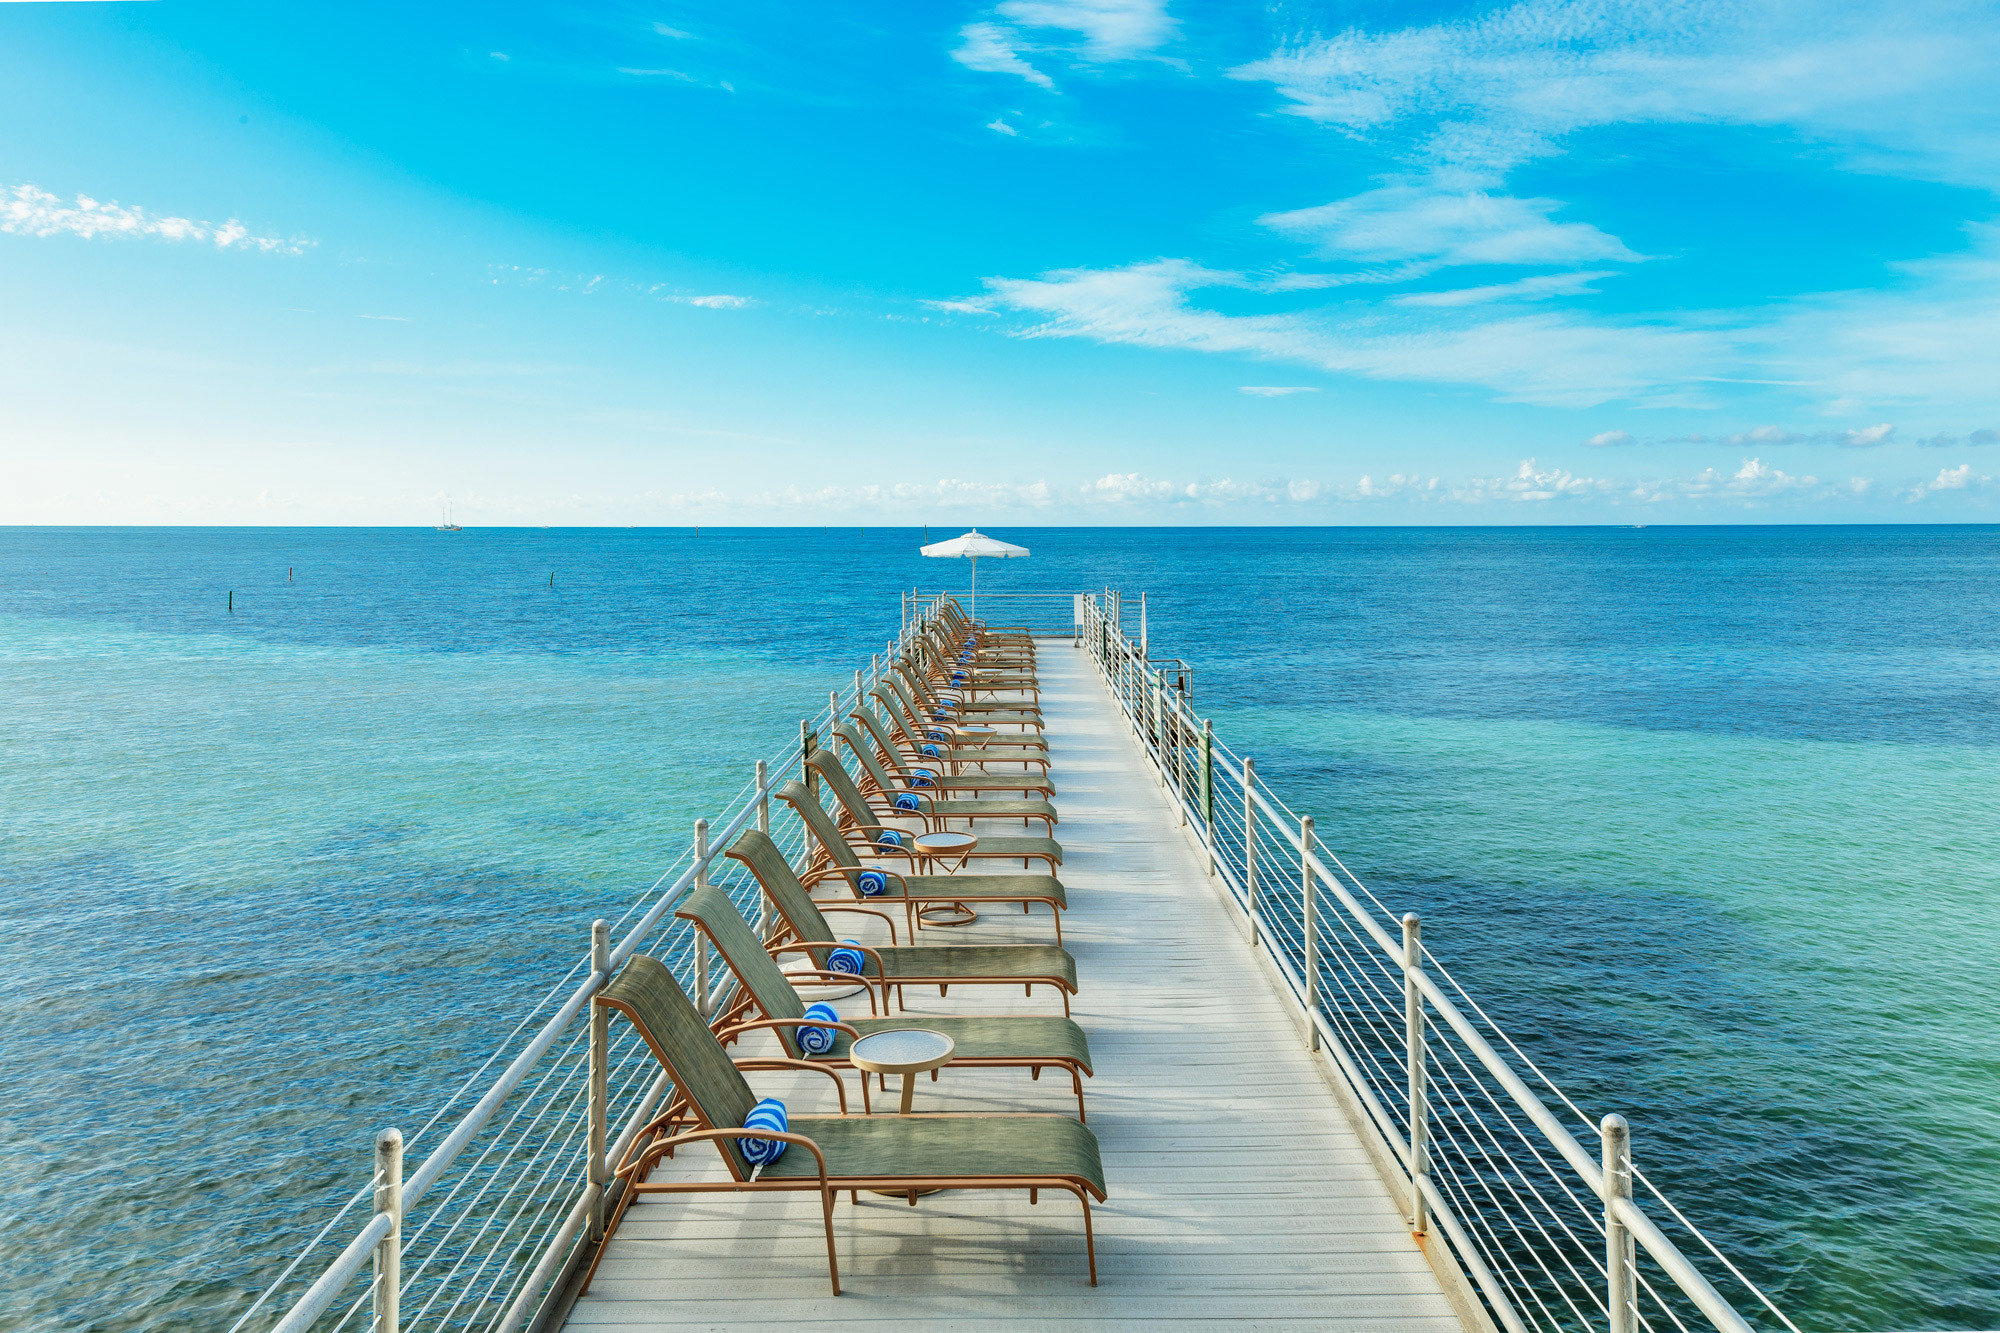 water sky Boat Sea horizon Ocean pier caribbean shore scene Coast Beach cape distance